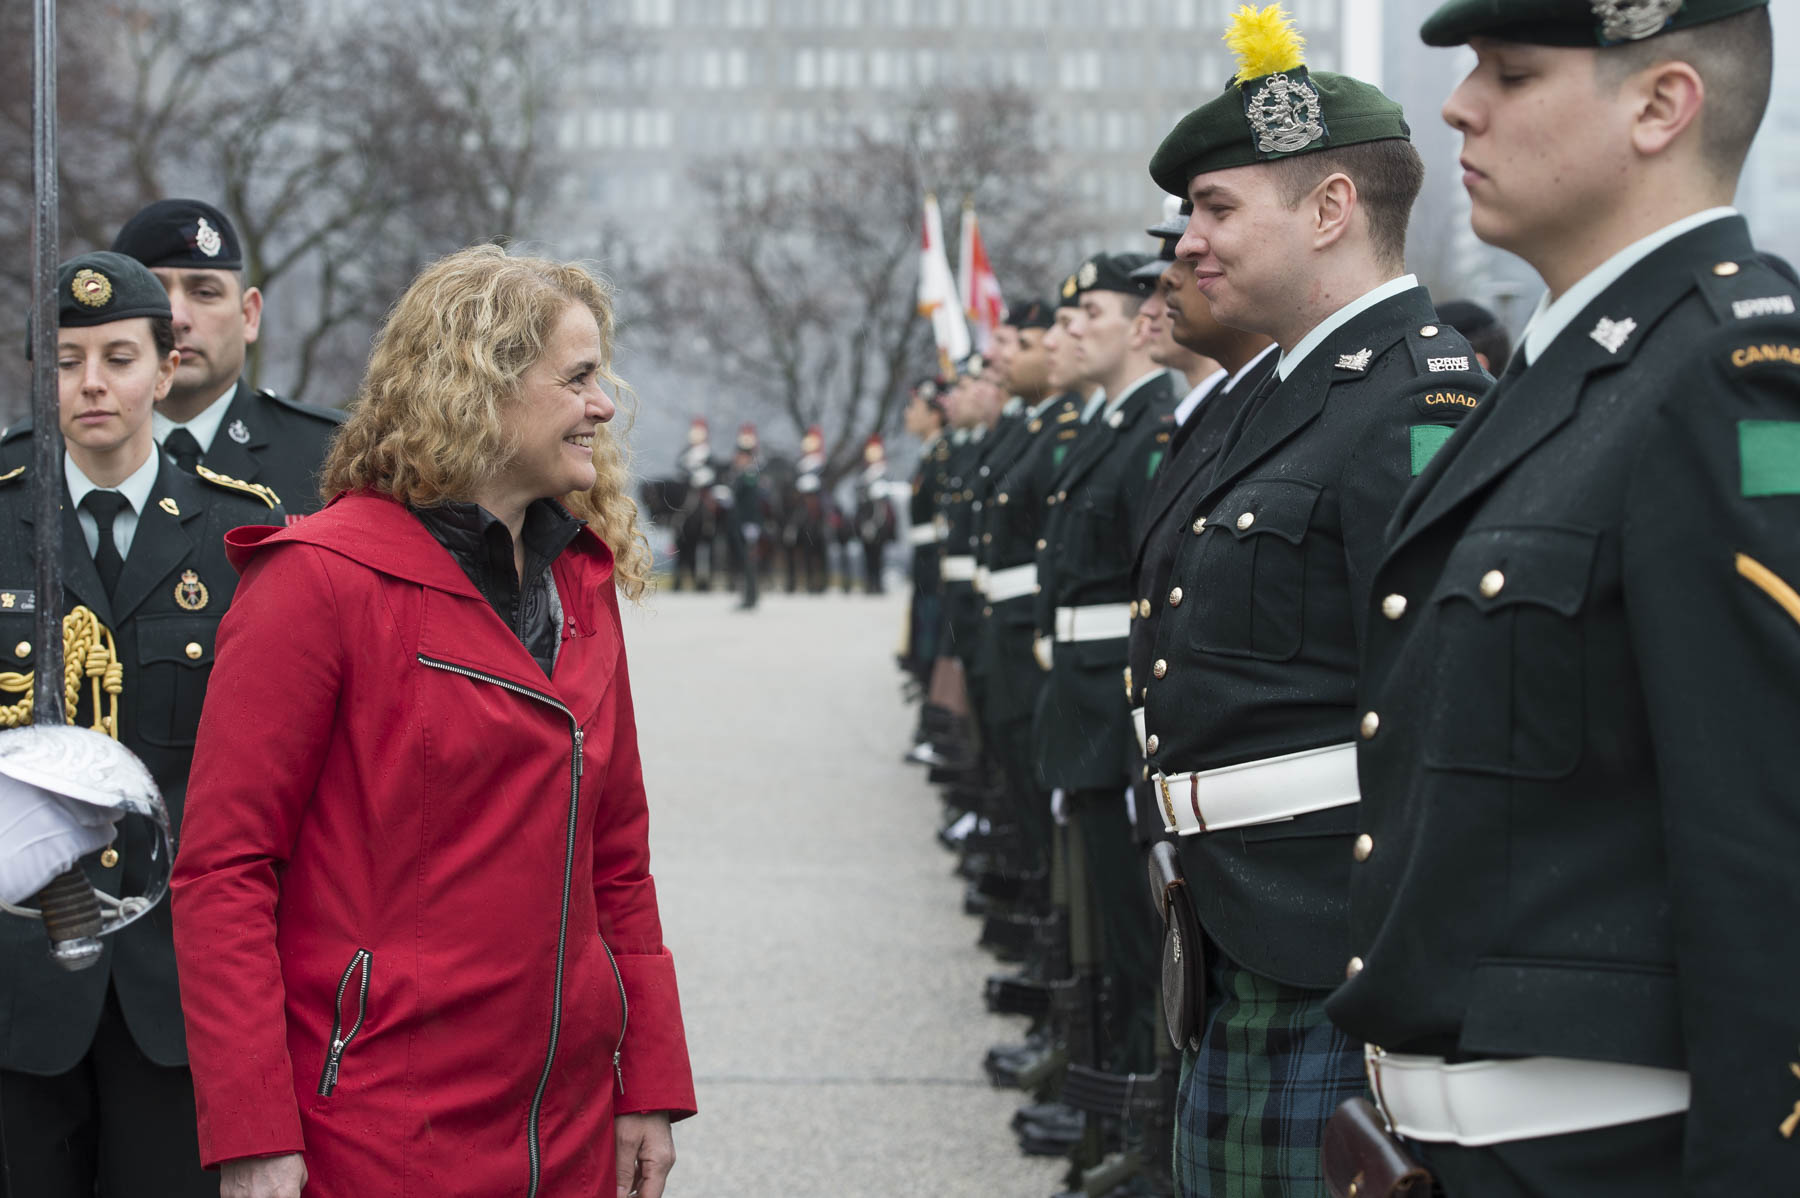 During the review of the guard, Her Excellency stopped to chat with troops.